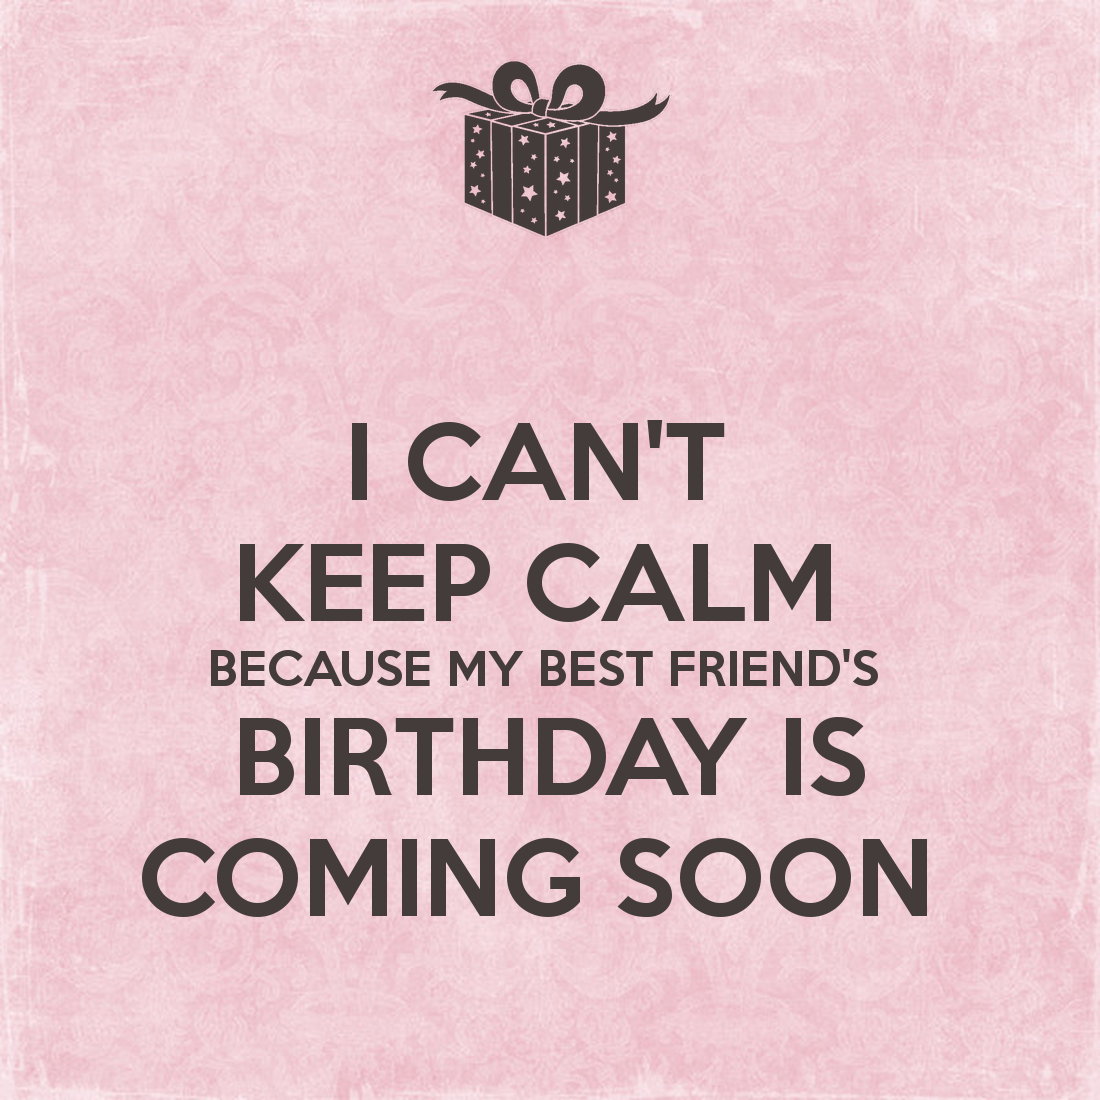 Birthday Coming Soon Quotes. QuotesGram